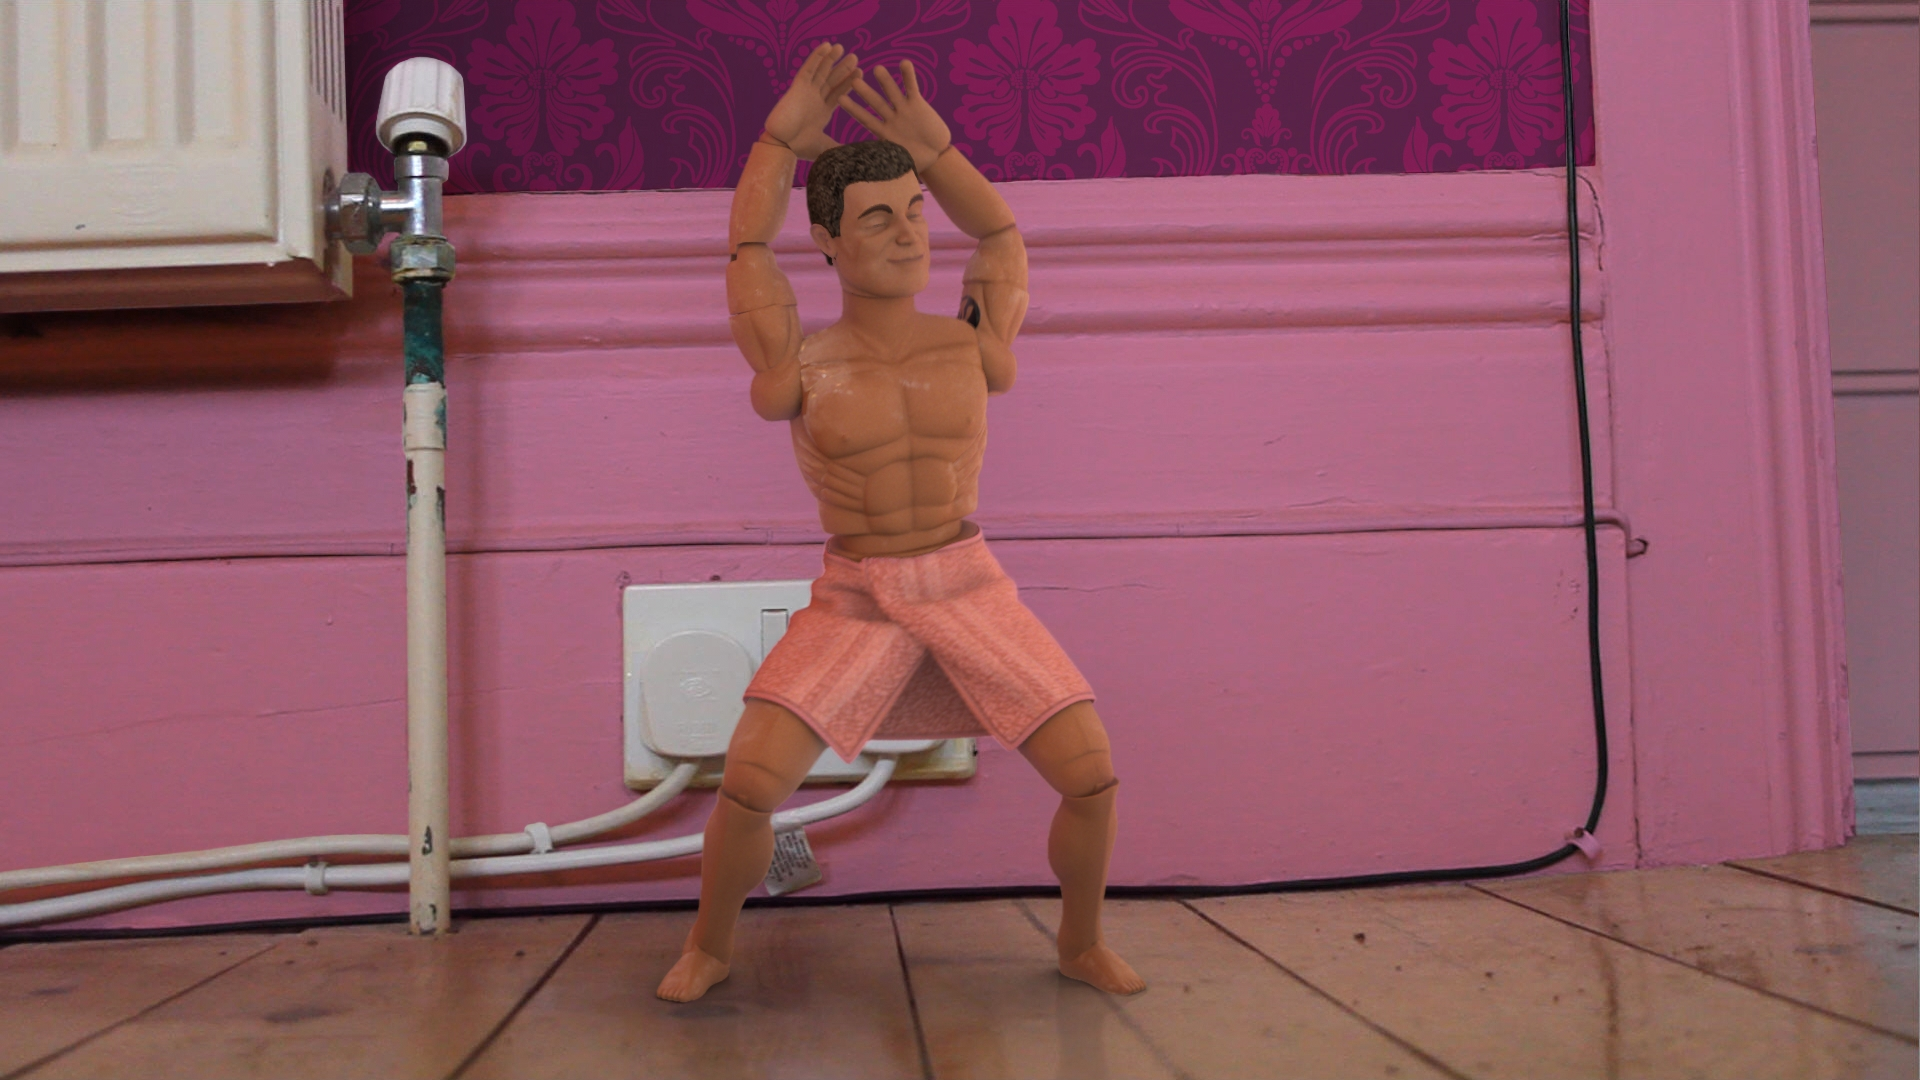 A CGI action man doll dancing in a CGI living room